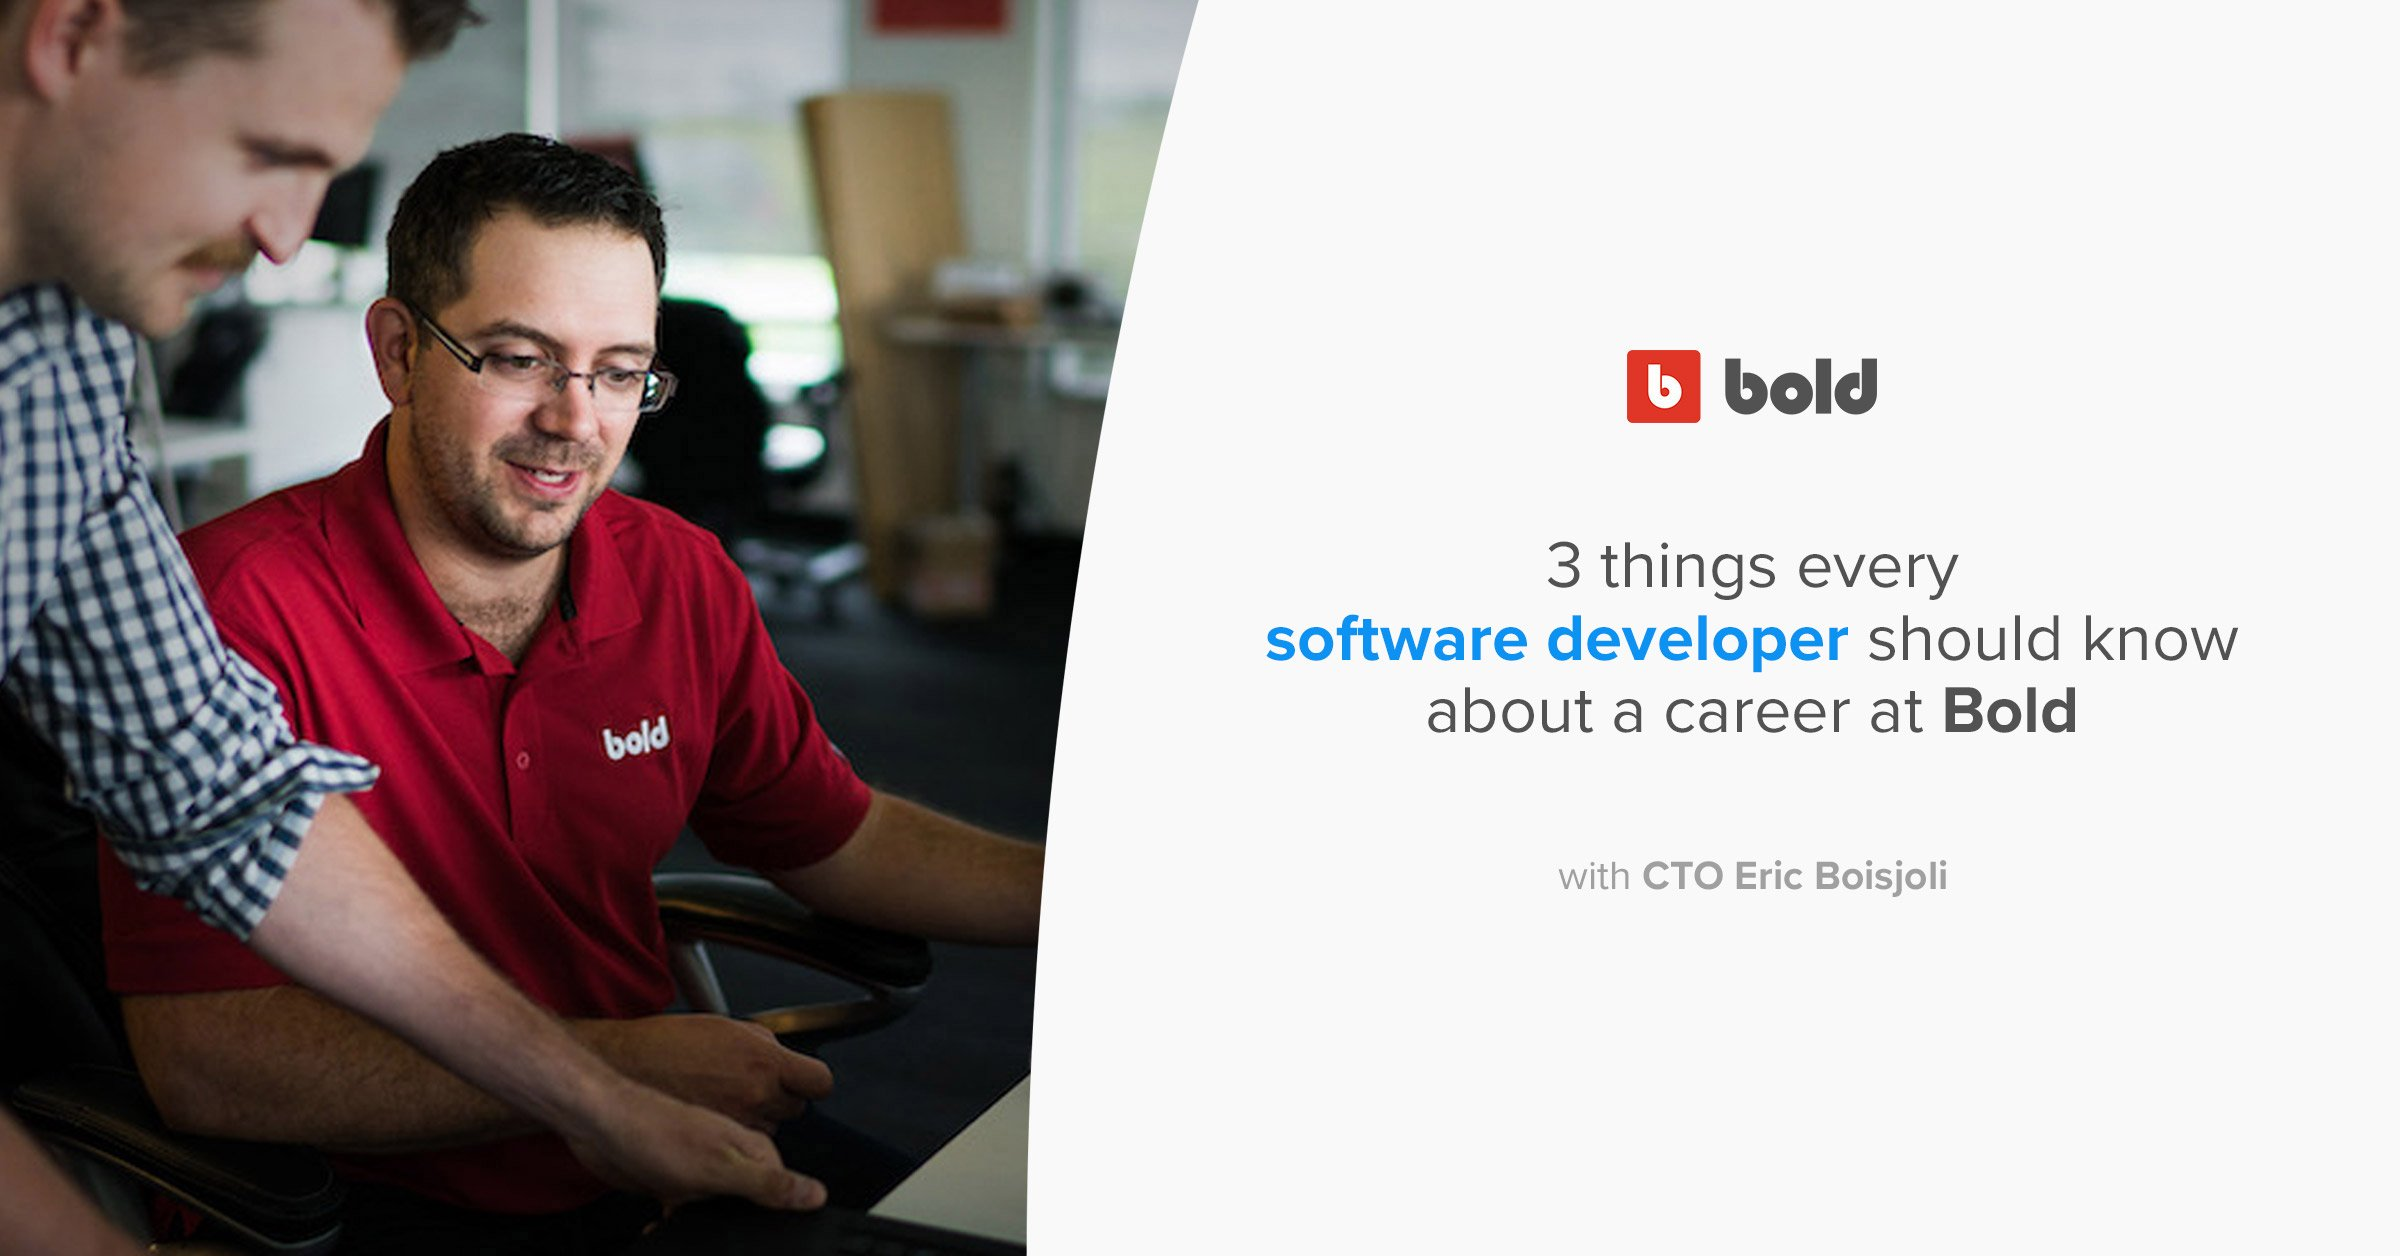 3-things-every-software-developer-should-know-about-a-career-at-bold